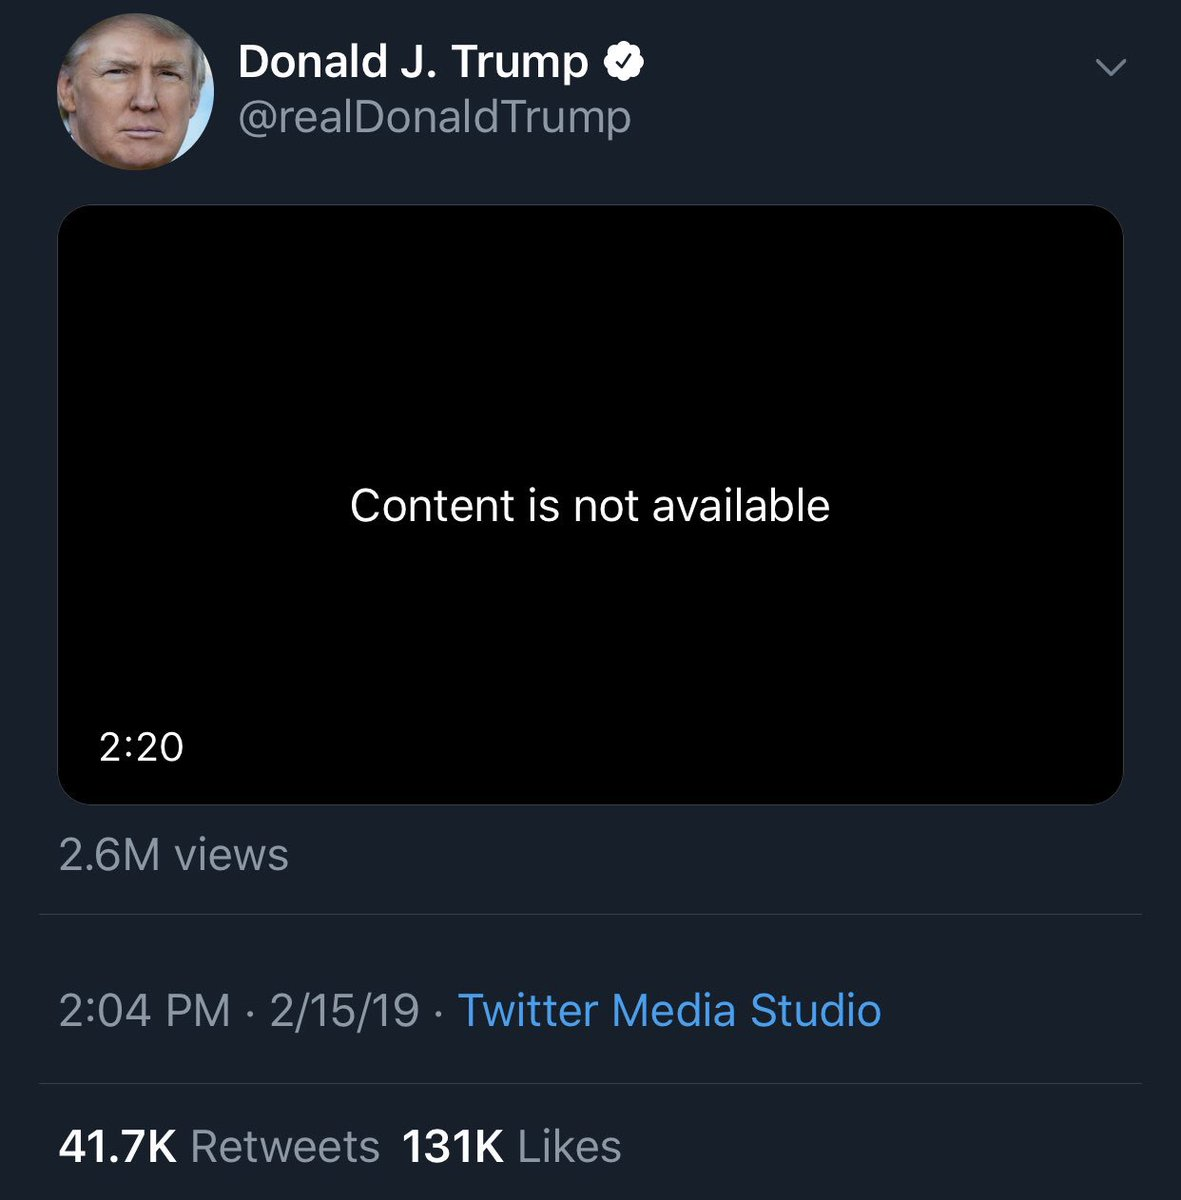 trump's video getting taken down for a copyright violation, which in turn rallies the masses to cry about twitter censoring conservatives is about the perfect way to end this week